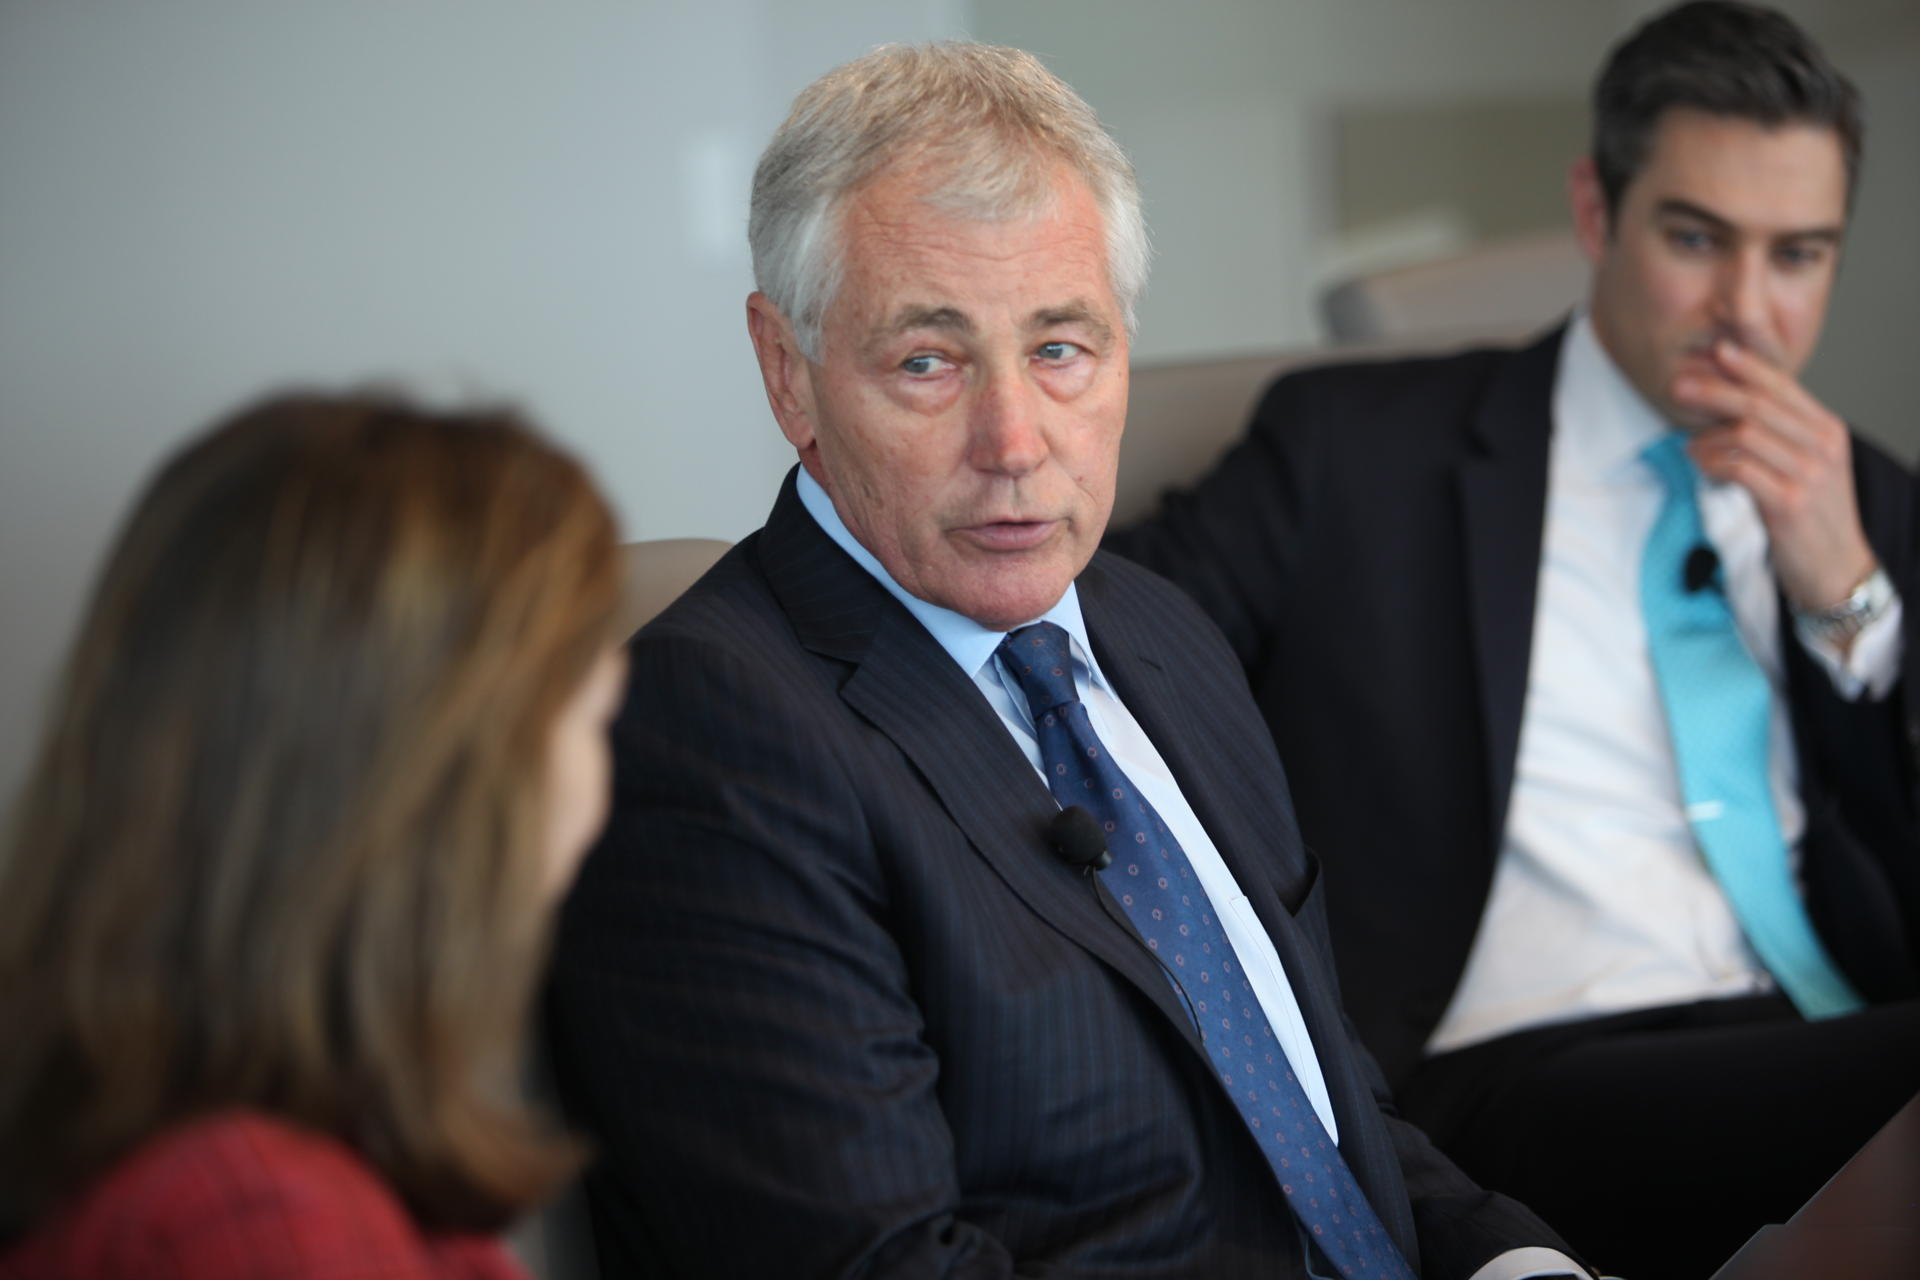 Chuck Hagel to Next US President: Talk to Putin